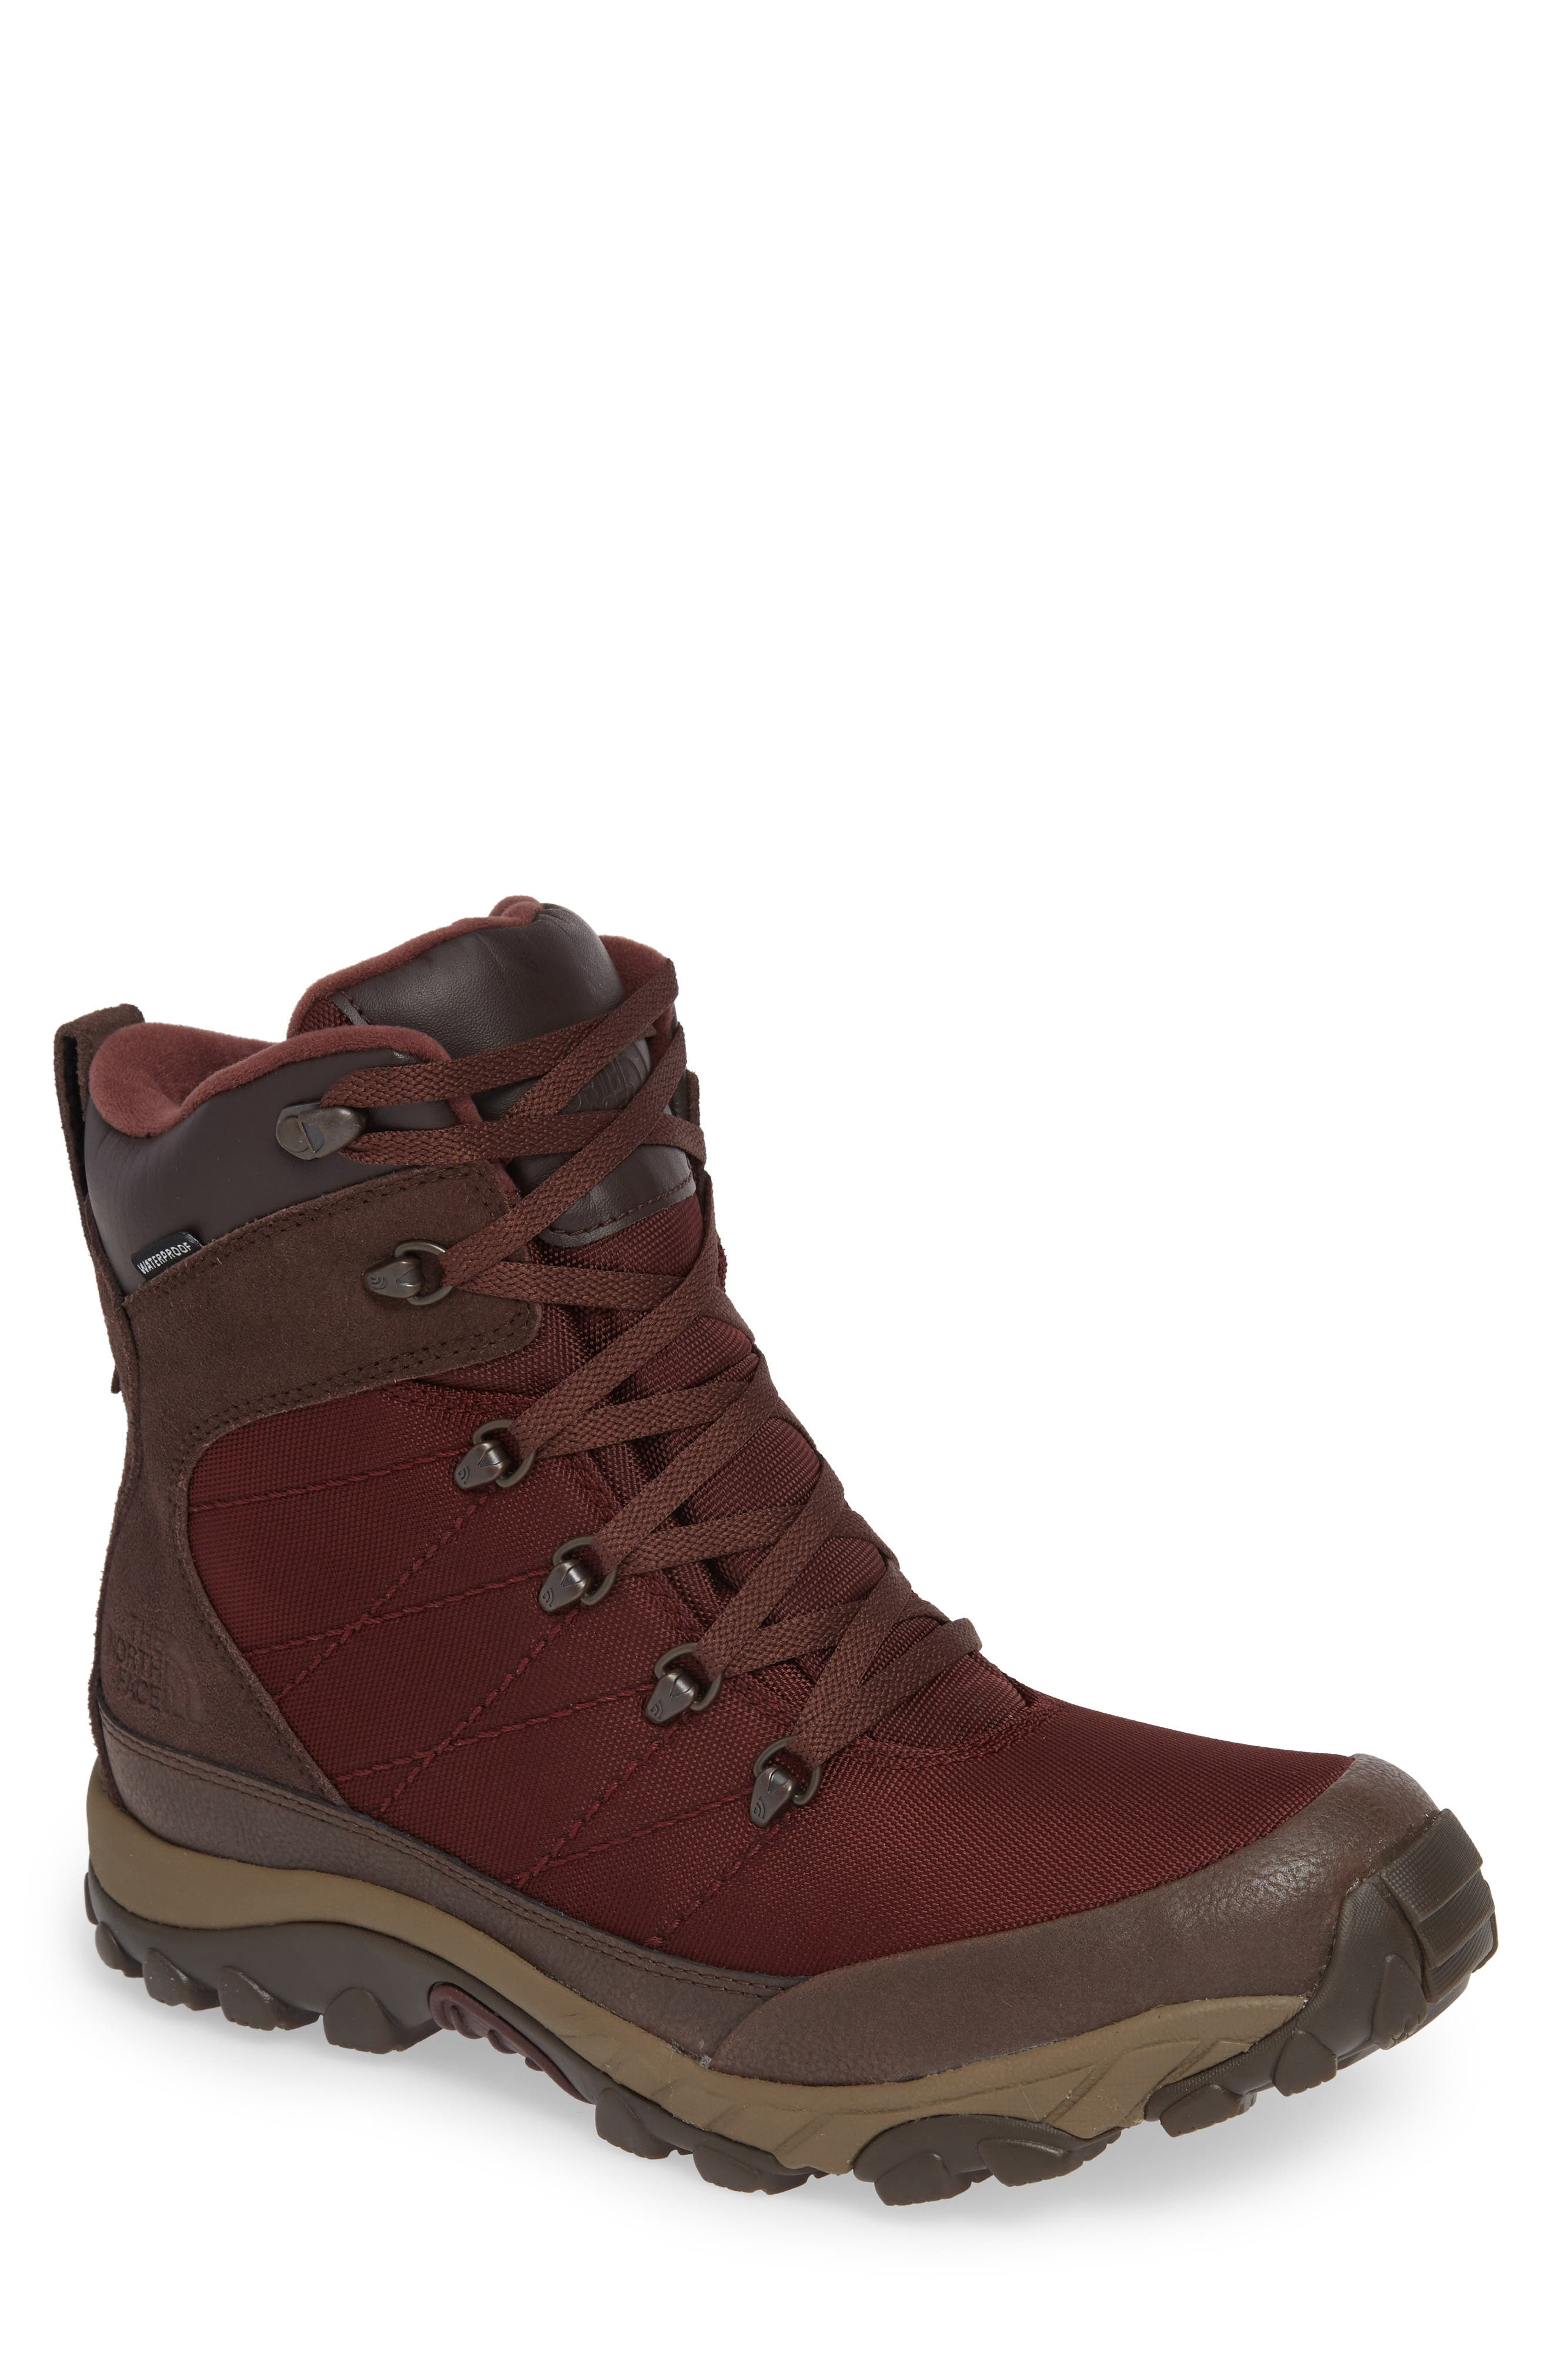 The North Face Chilkat Snow Waterproof Boot, Brown